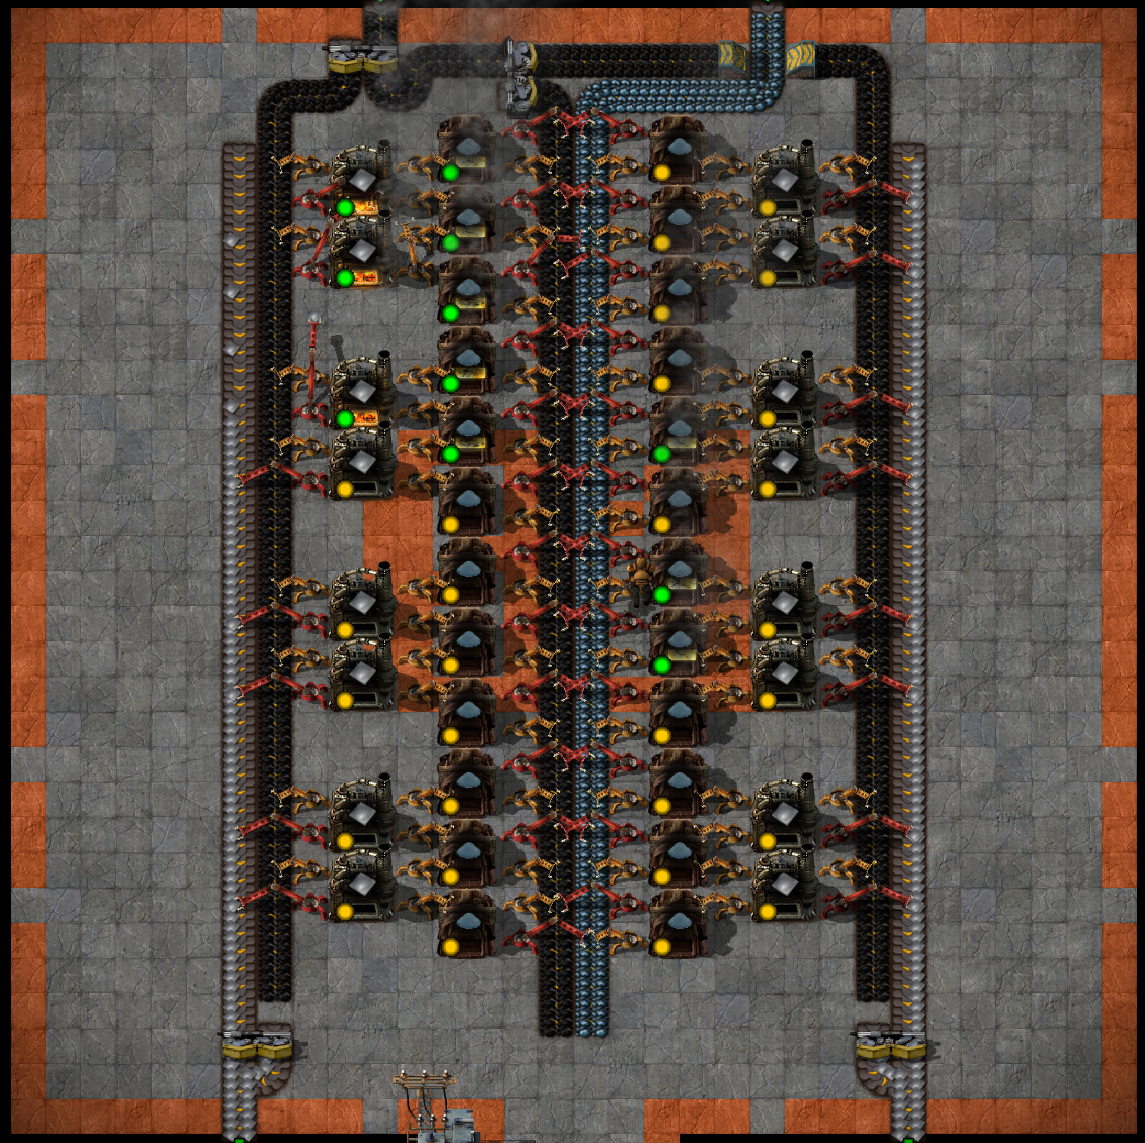 Find This Pin And More On Factorio By Sean9486.